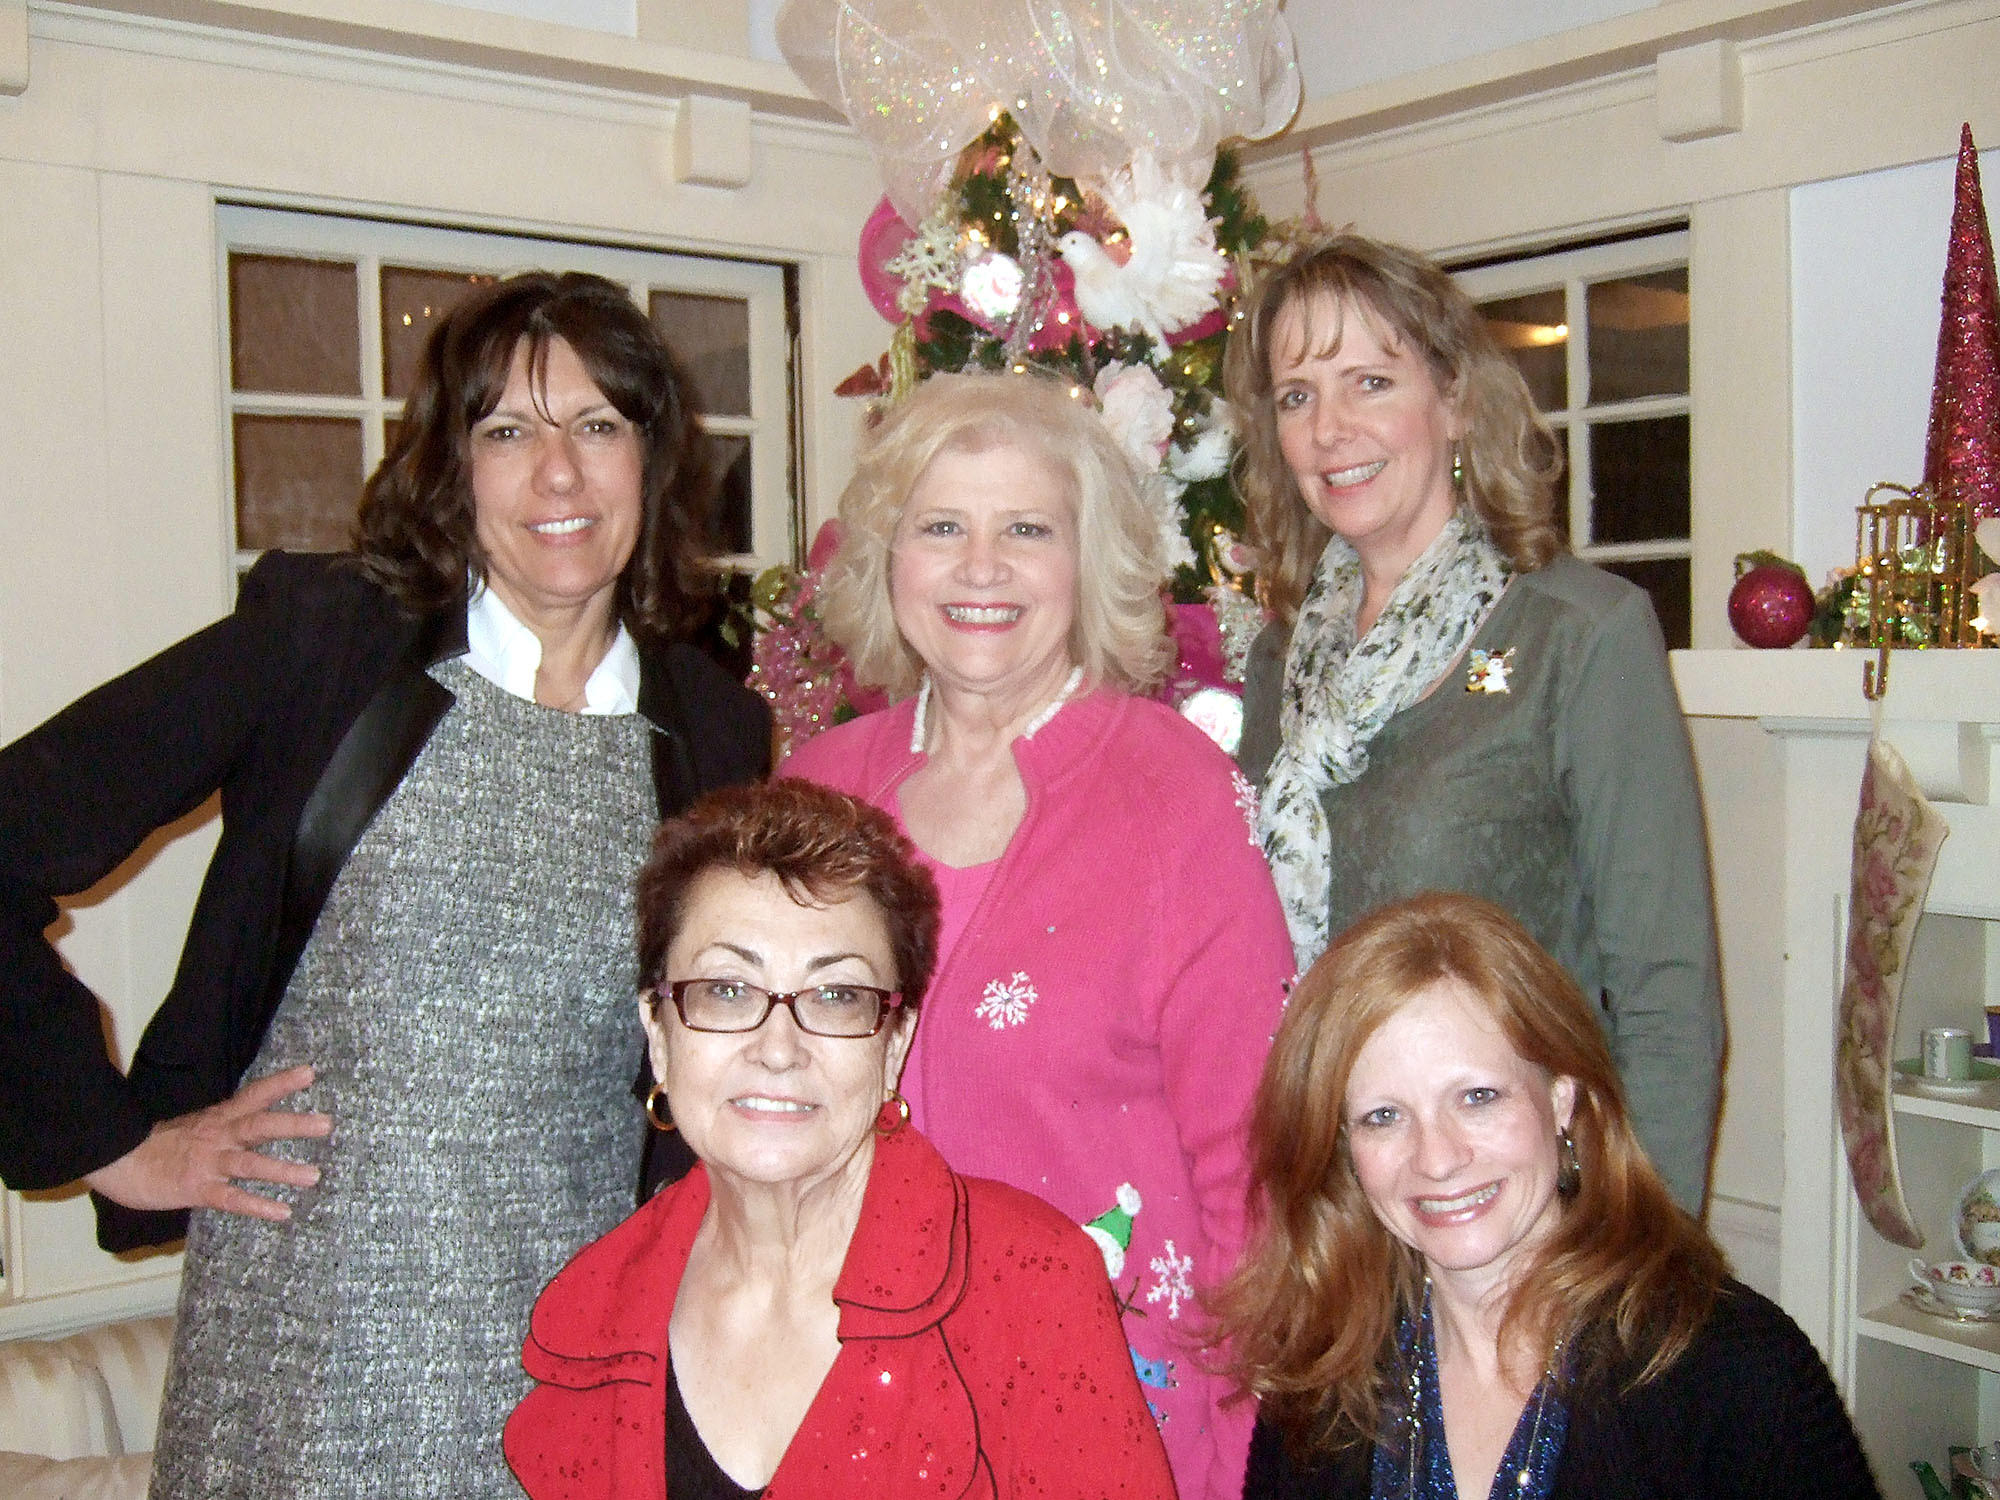 Members of the Glendale Area Panhellenic, front row from left, Janis Rosebrook and Julie Weller; and back row from left, Kim Westhoff, Deb Ann Orfalea and Rondi Redmann, at a recent holiday party.